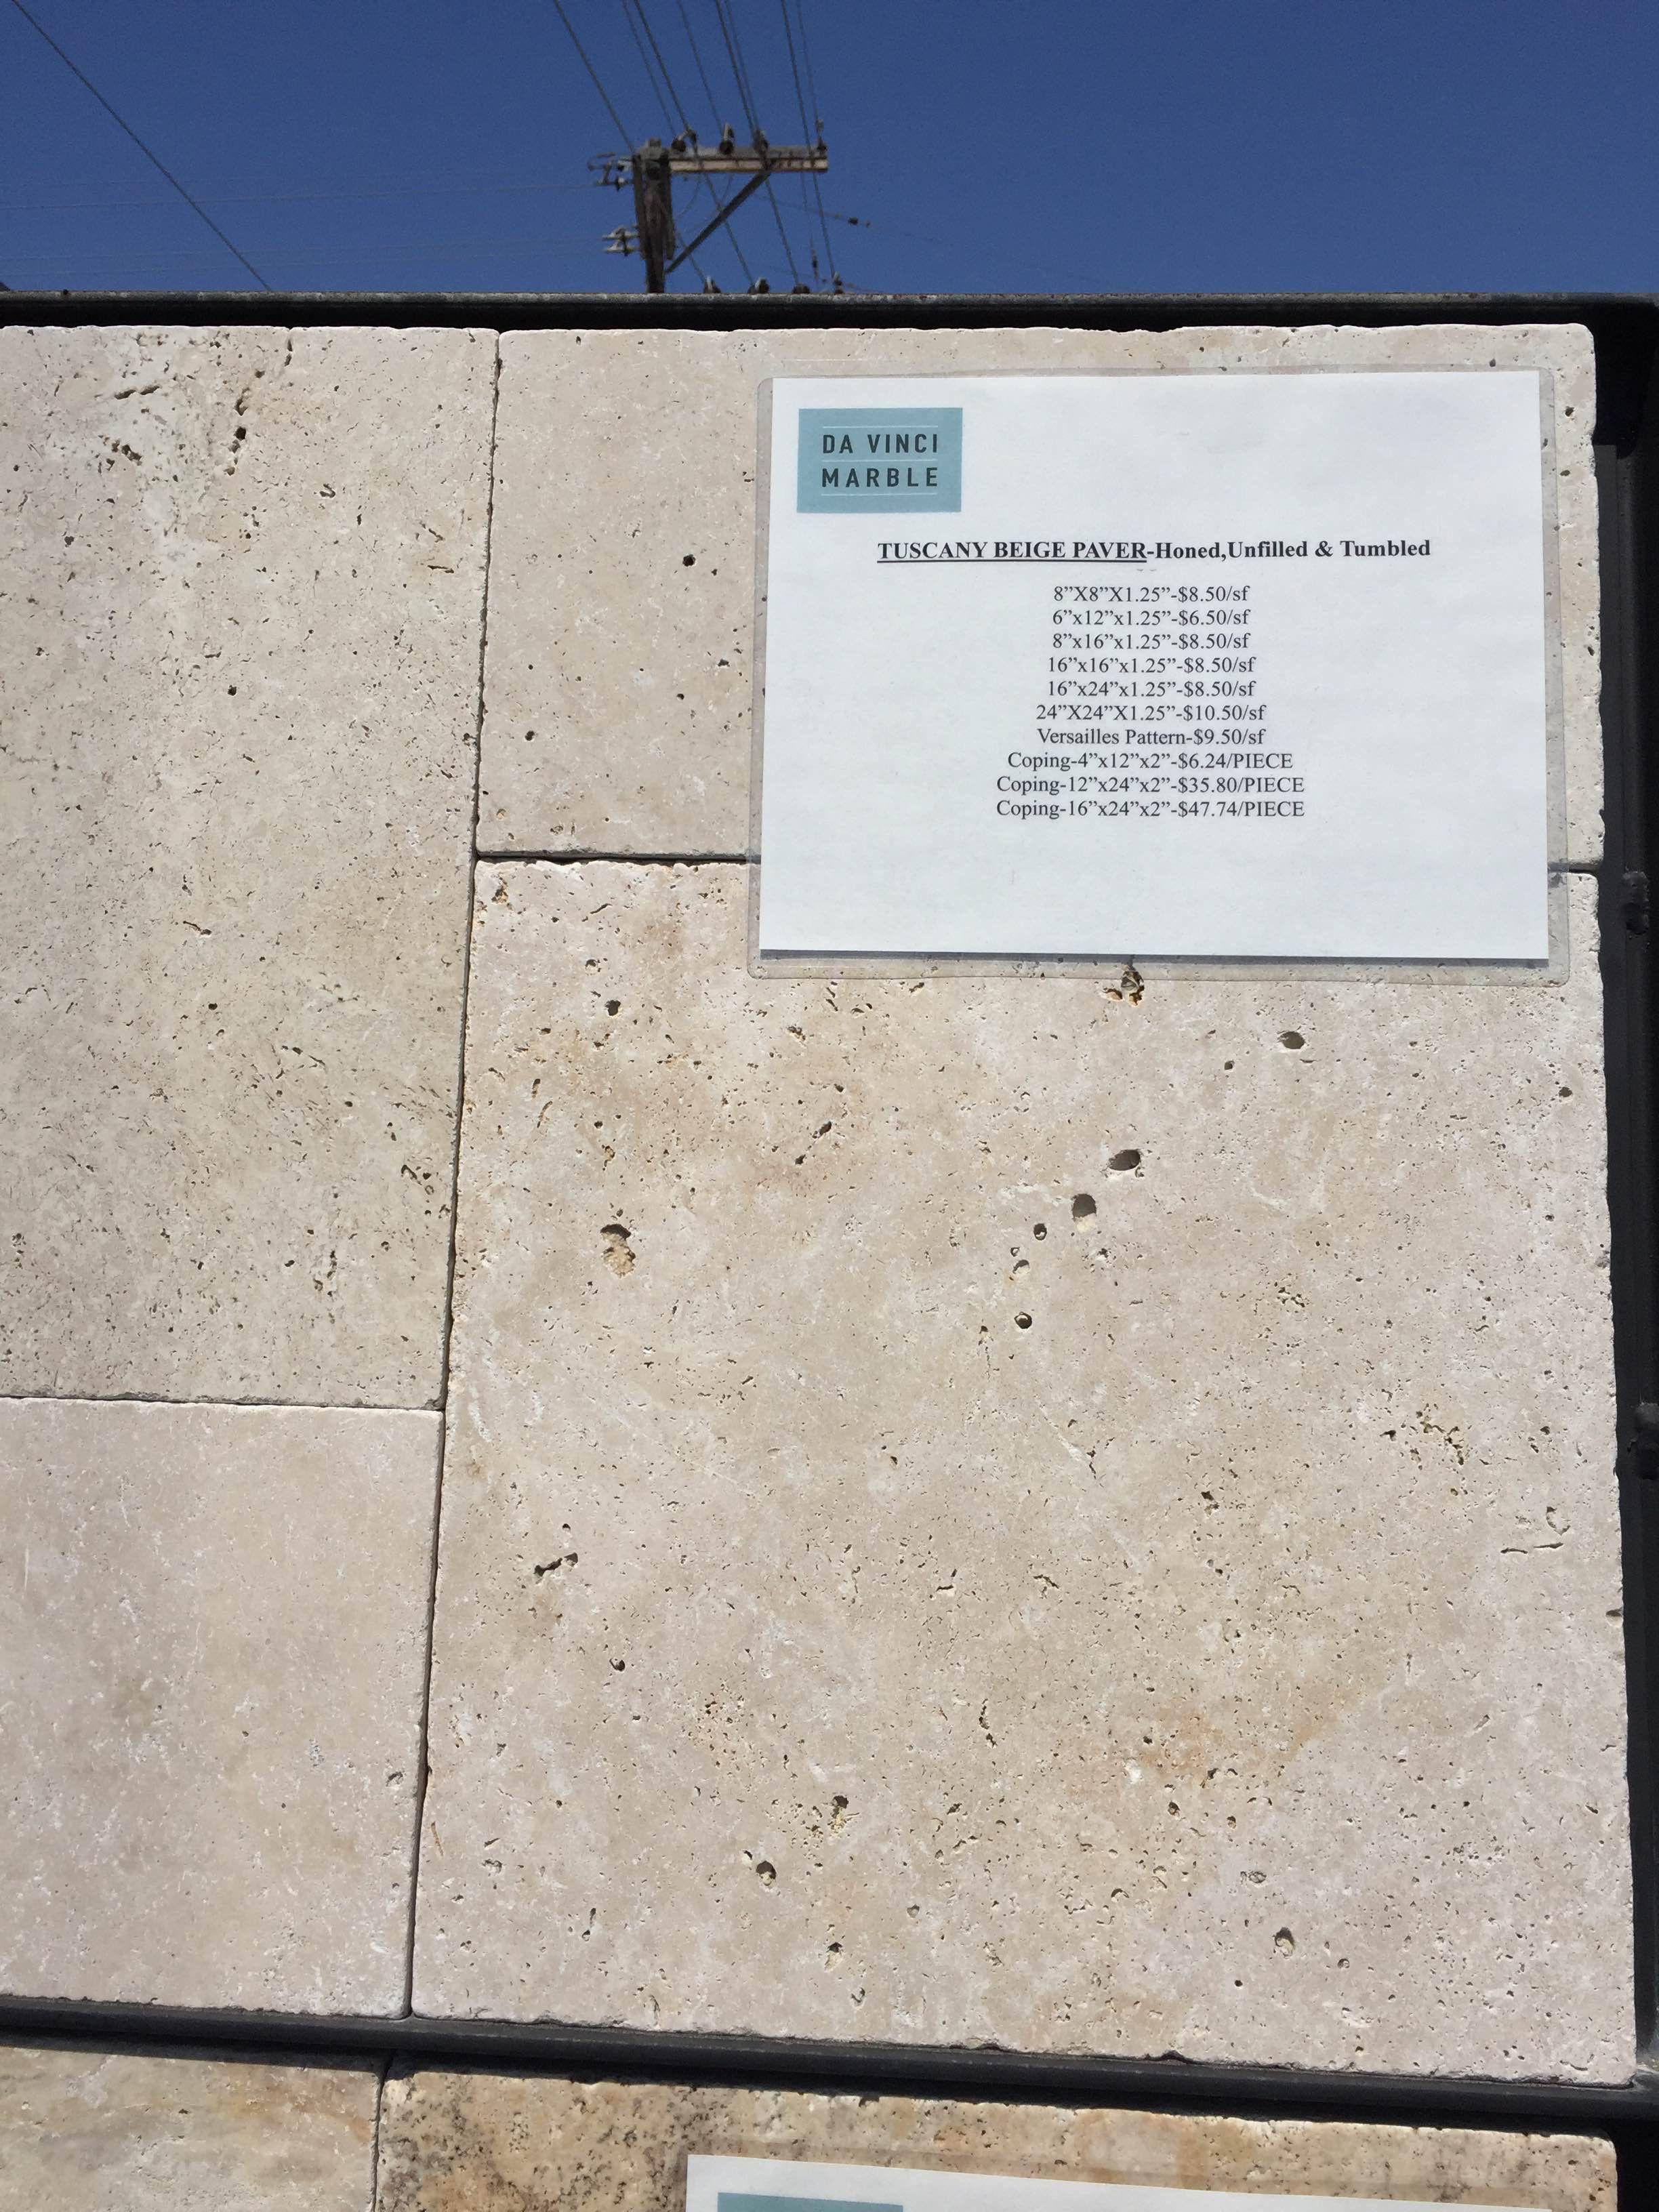 DaVinci Marble) Travertine paver 'Tuscany Beige' honed, unfilled